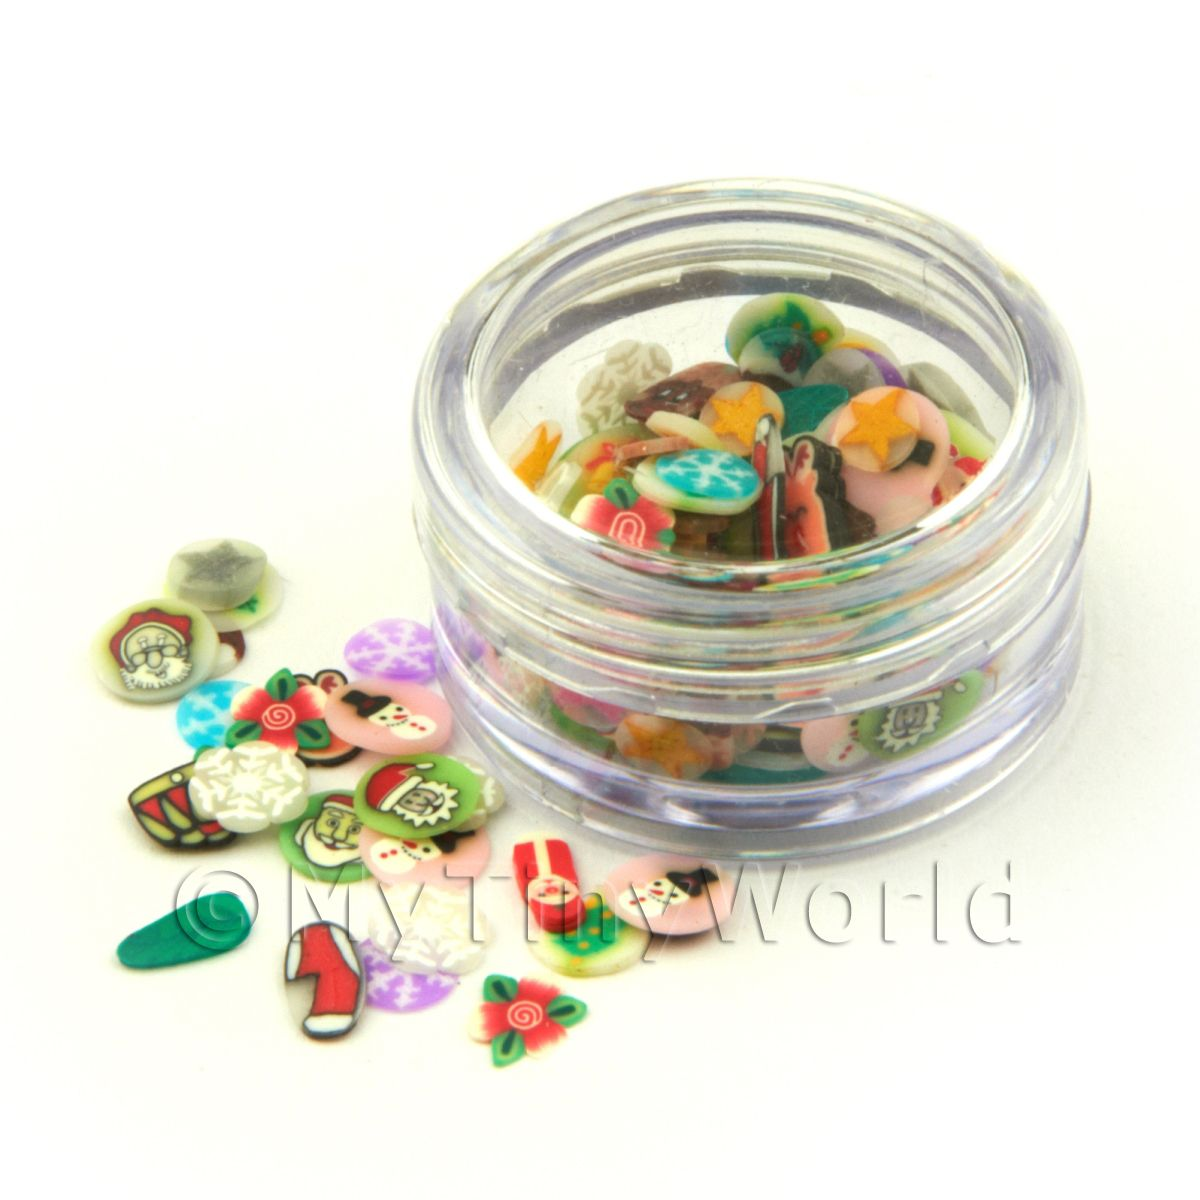 Christmas Themed Nail Art Pot Containing 120 Slices